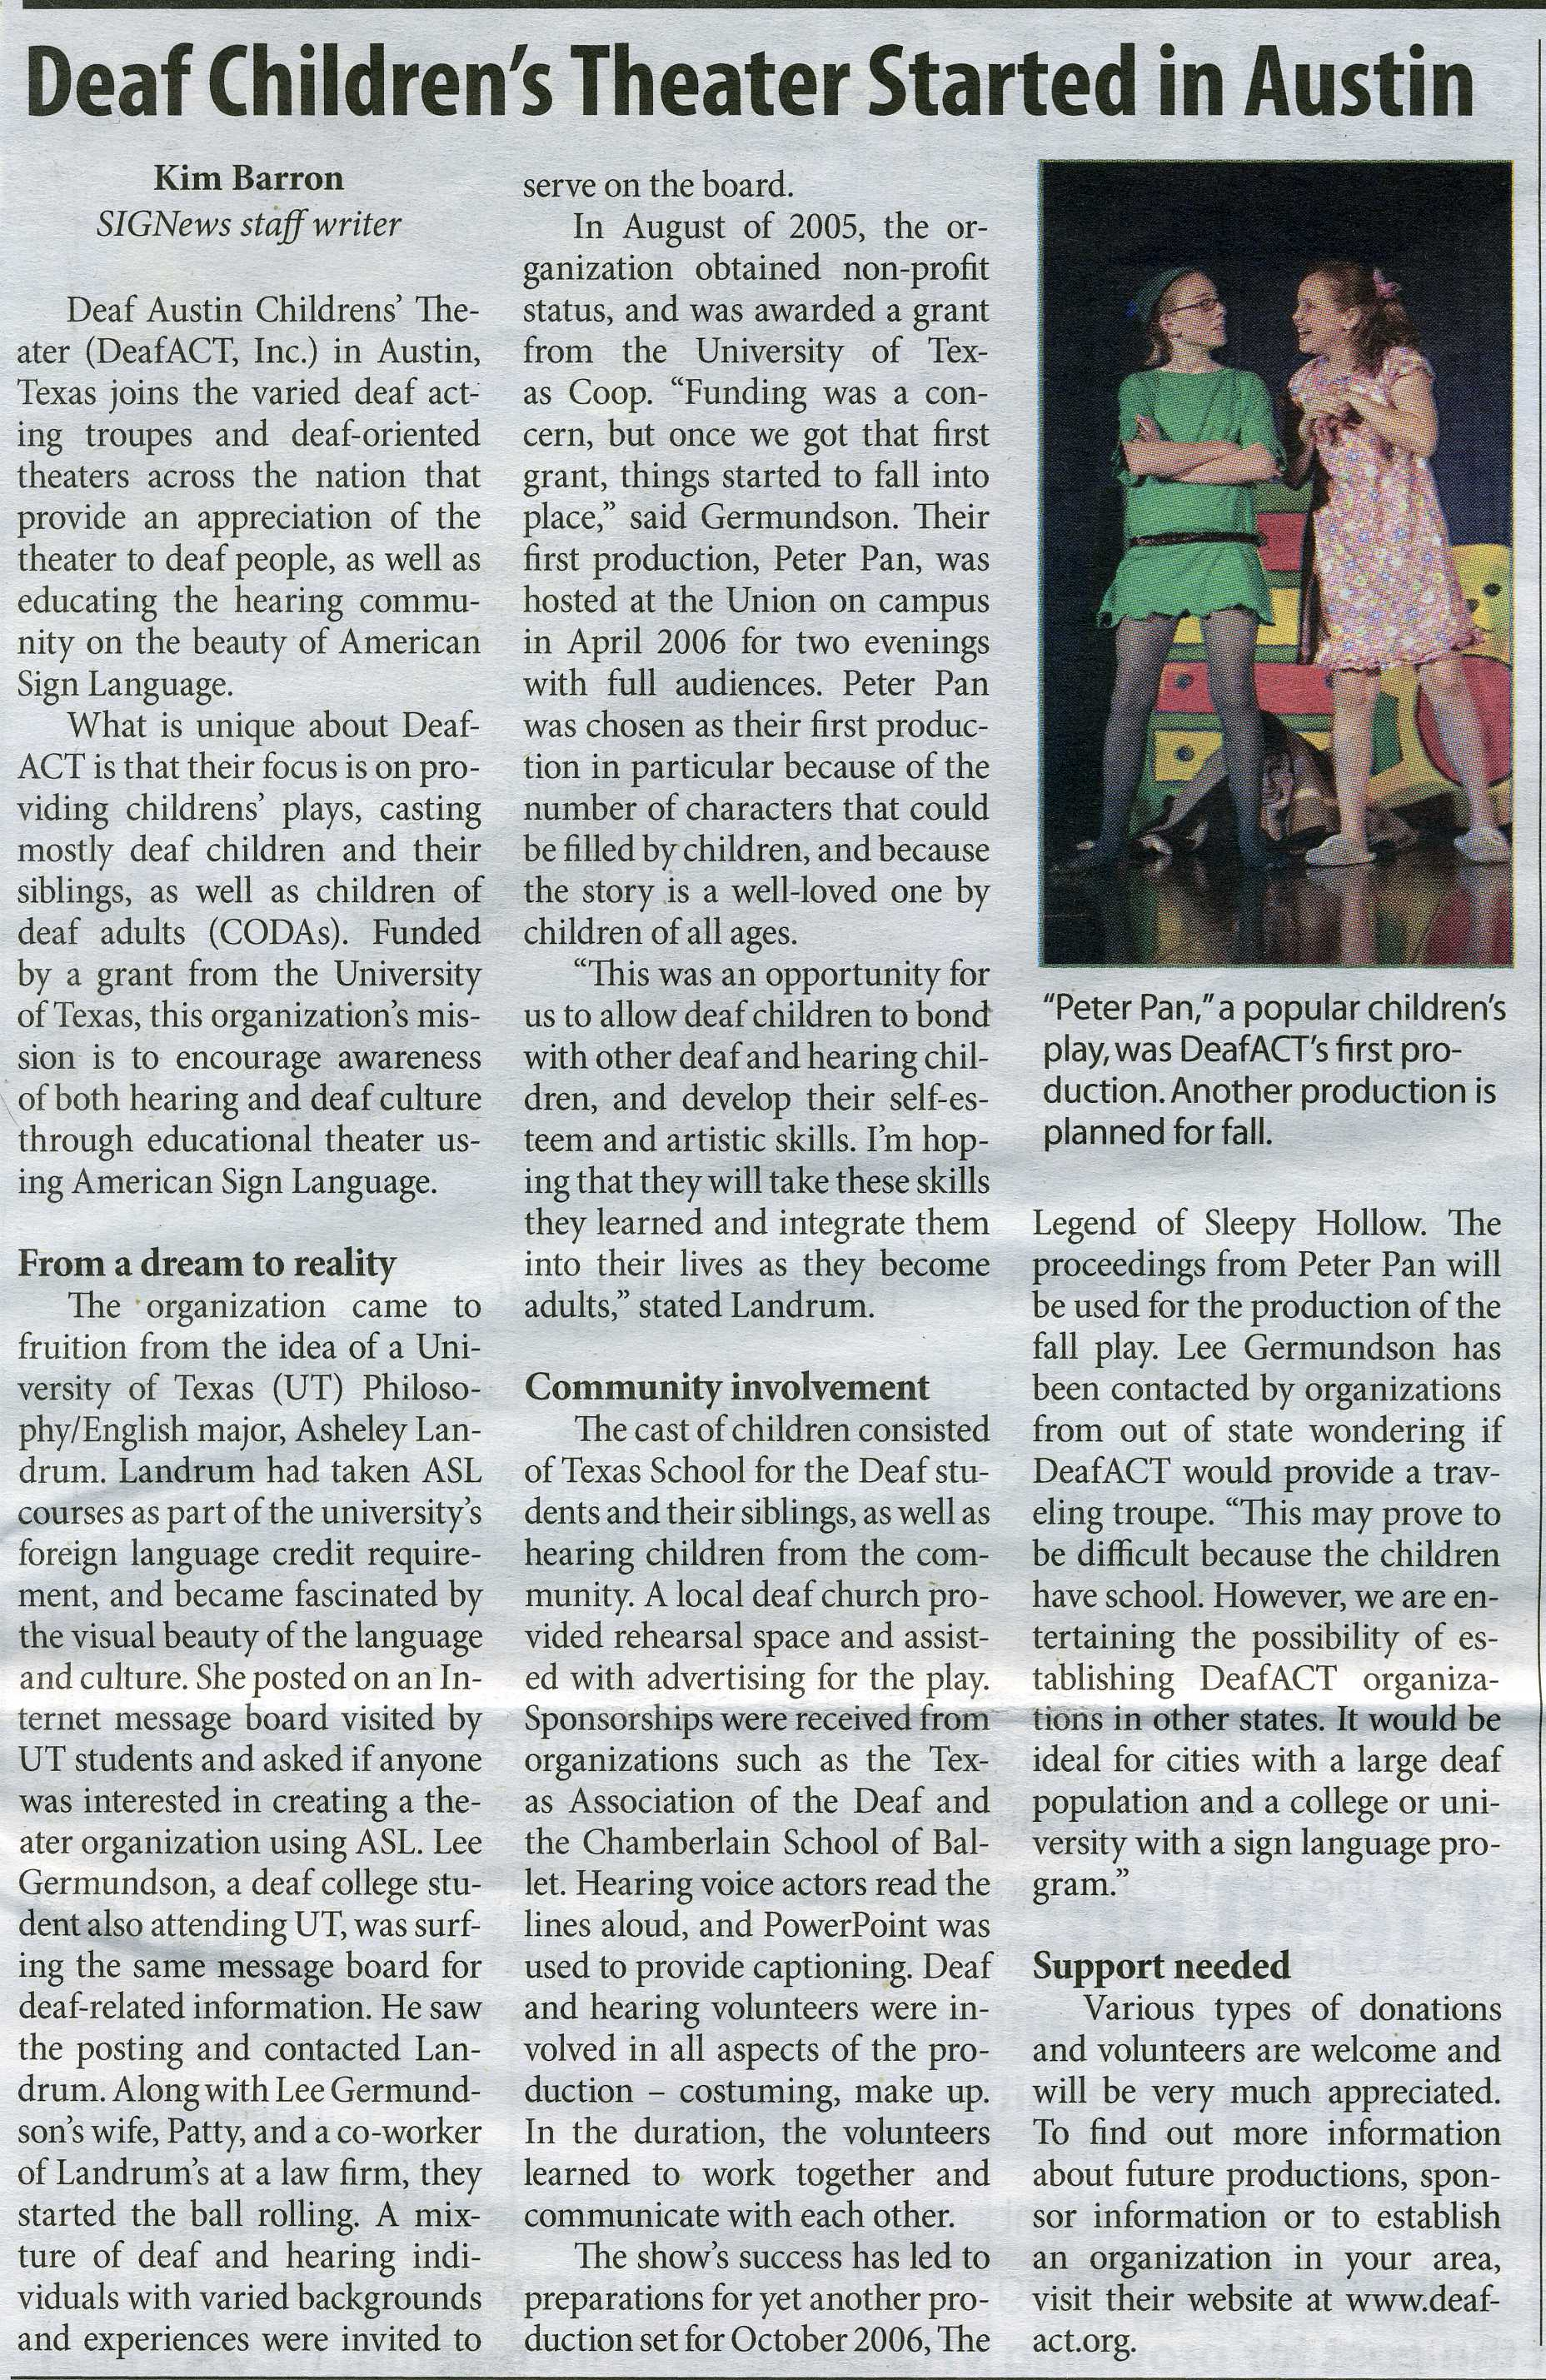 Deaf Act article on Signews